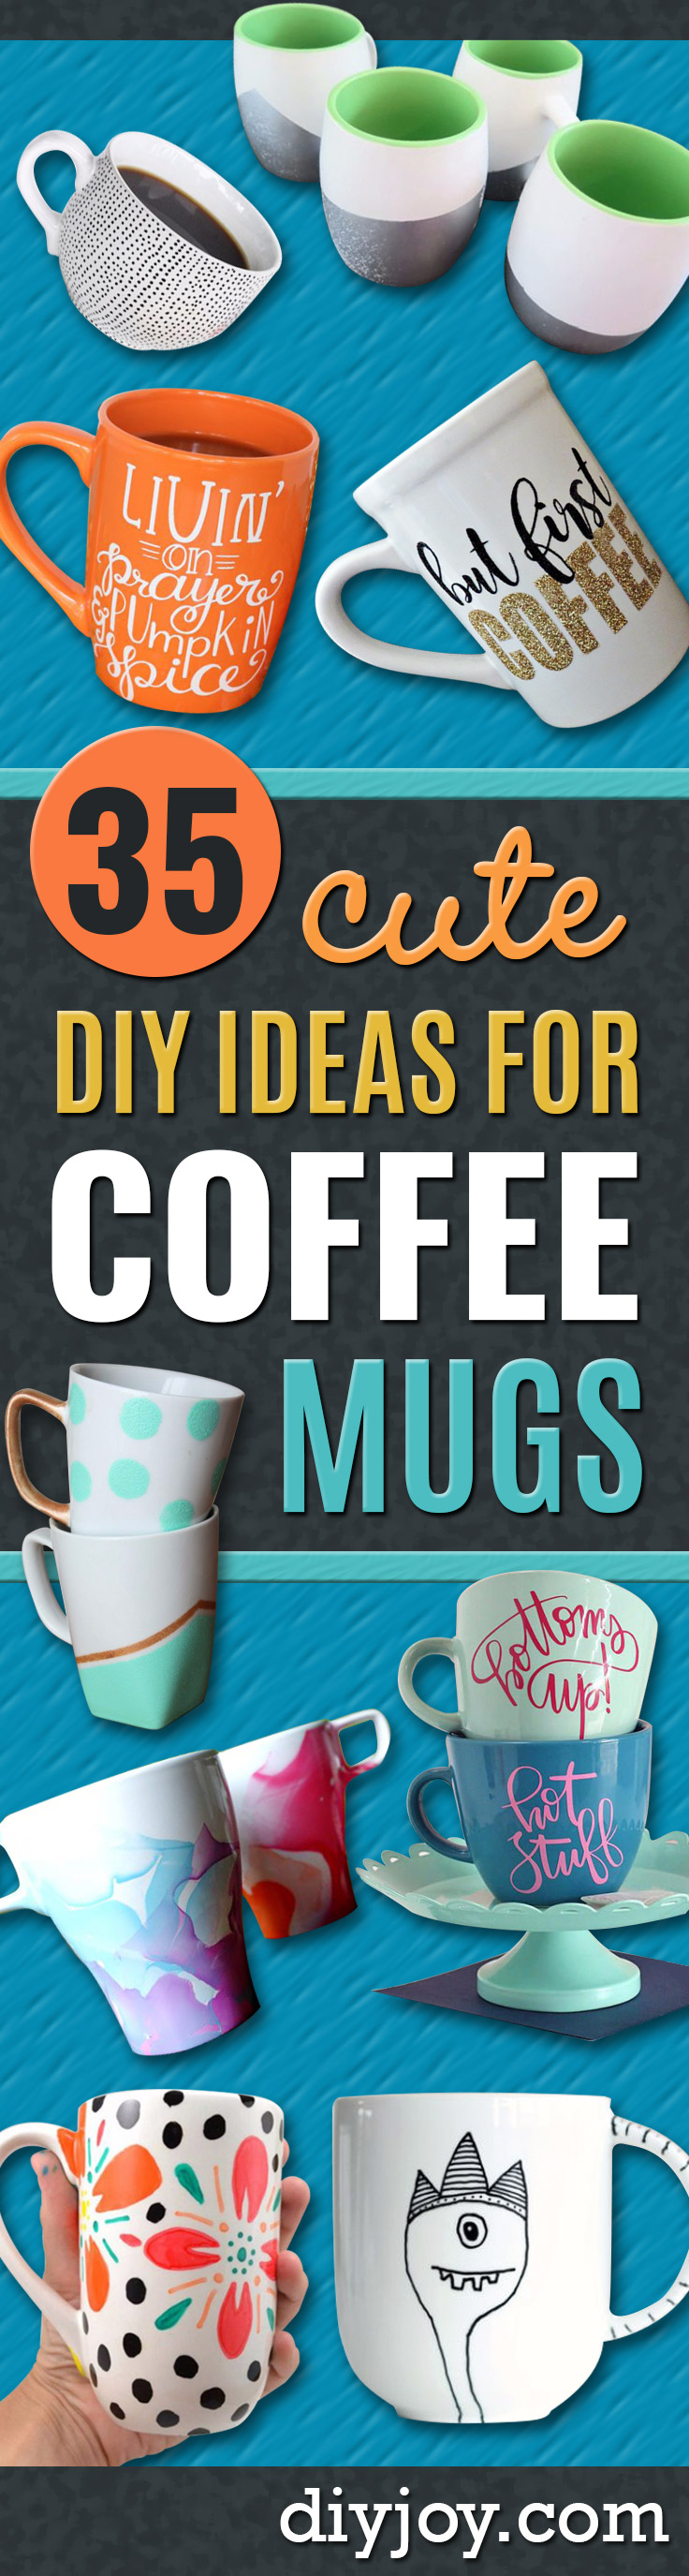 DIY Coffee Mugs - Easy Coffee Mug Ideas - Homemade Gifts and Crafts - Decorate Coffee Cups and Tumbler- Cool Art Ideas